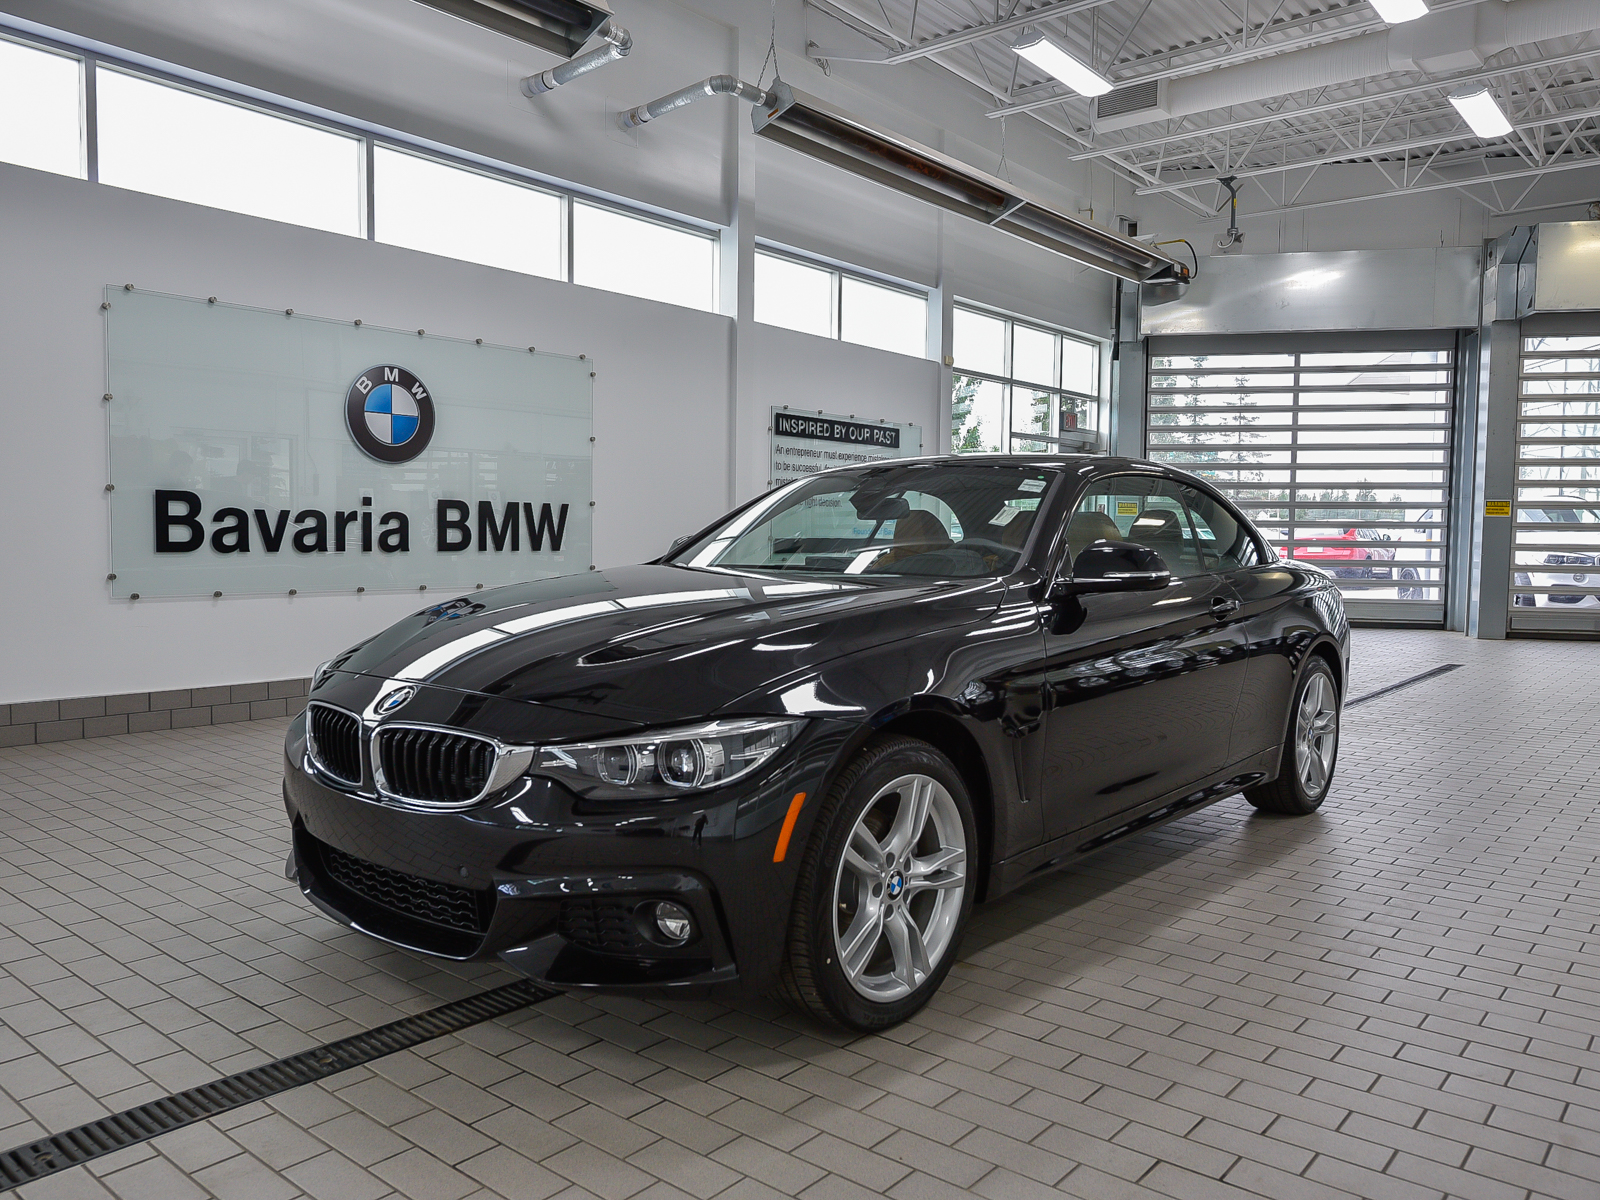 New 2019 BMW 430i xDrive Cabriolet Convertible in Edmonton 194A8286